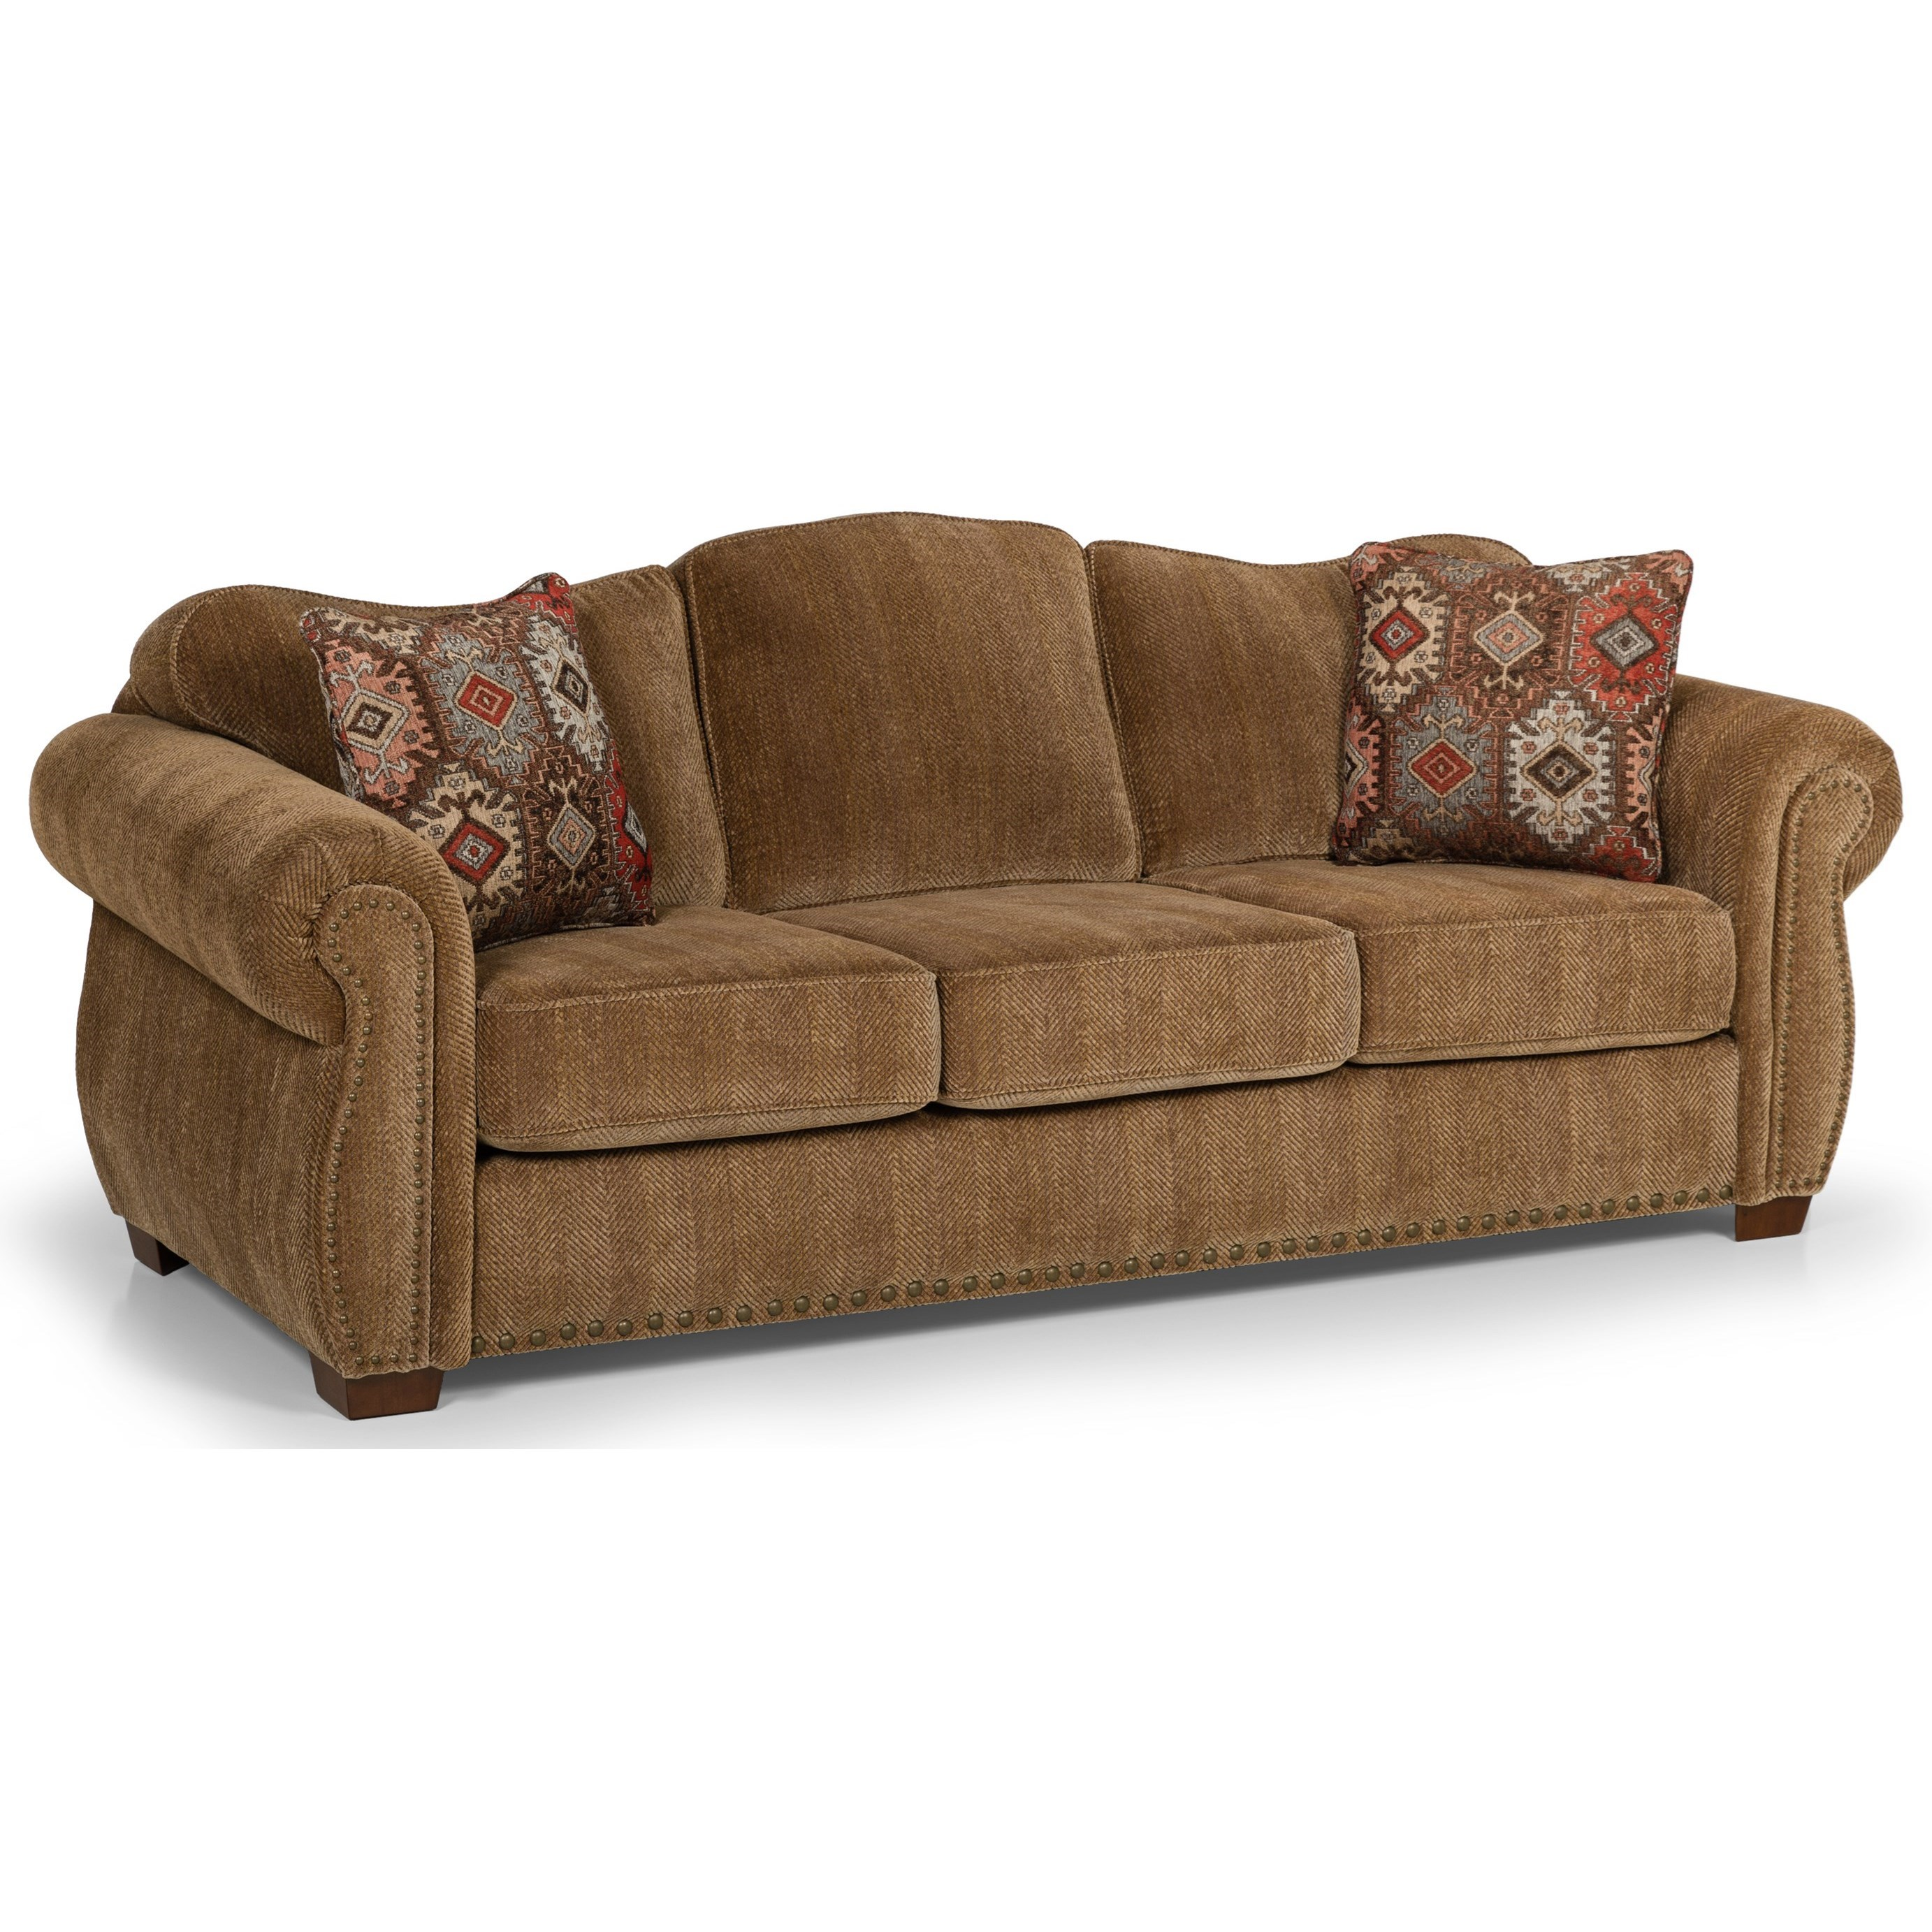 426 Sofa by Sunset Home at Sadler's Home Furnishings